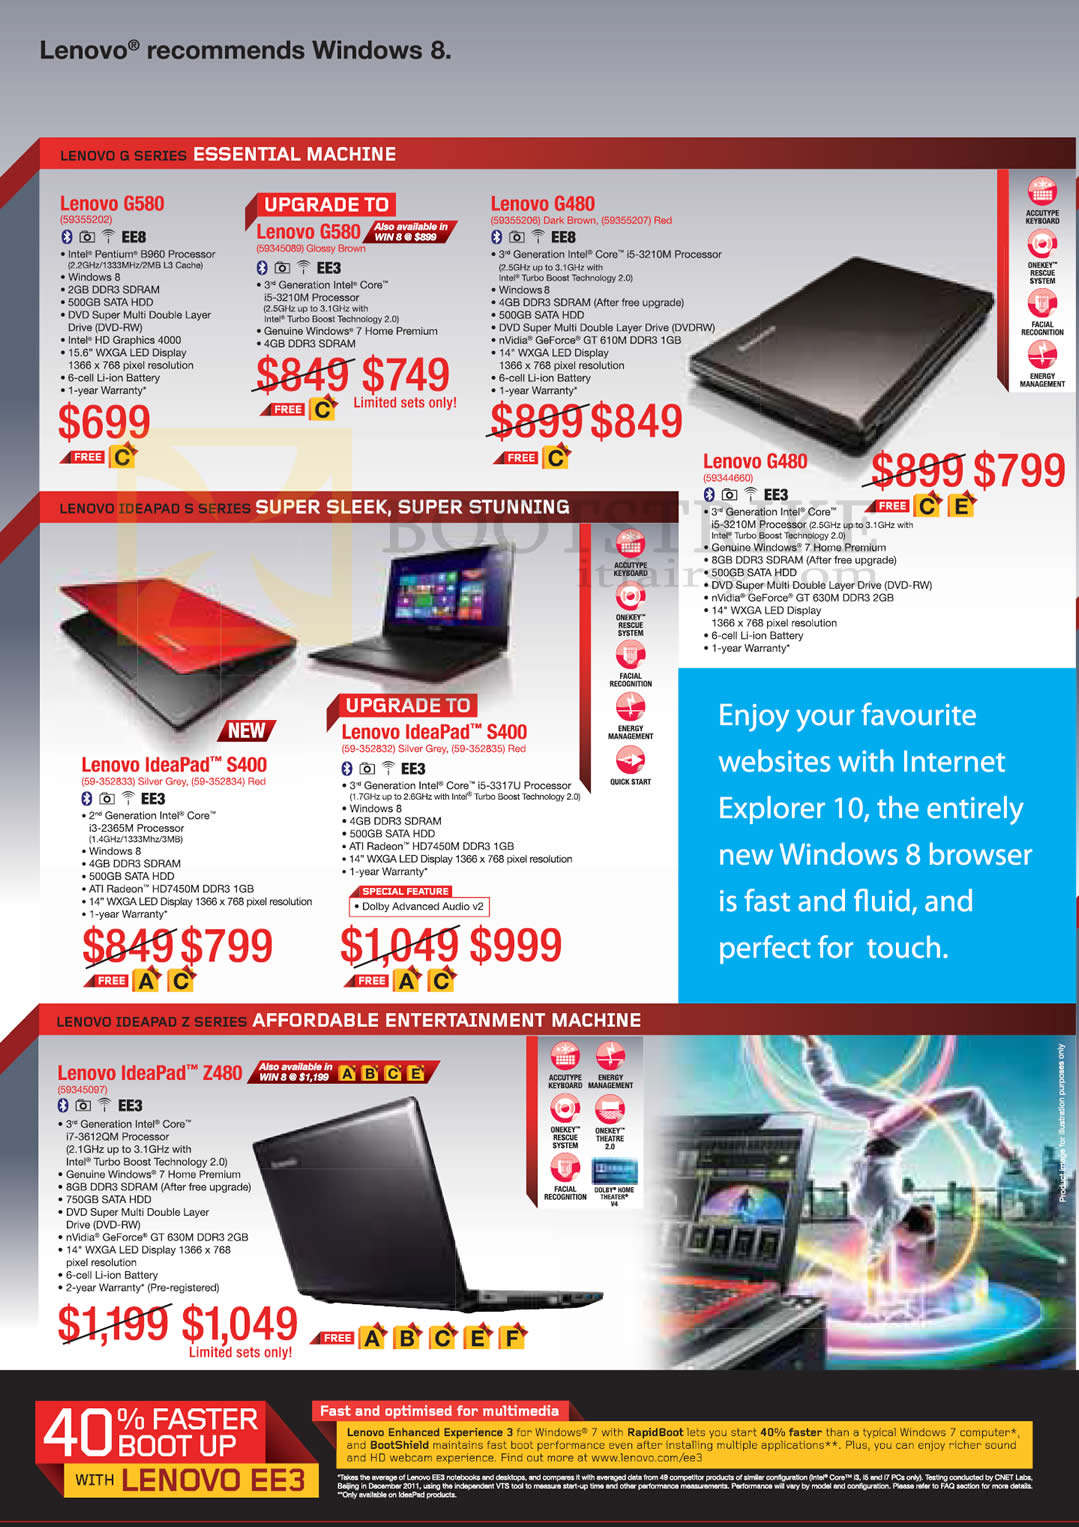 SITEX 2012 price list image brochure of Lenovo Notebooks G580, G480, IdeaPad S400, Z480